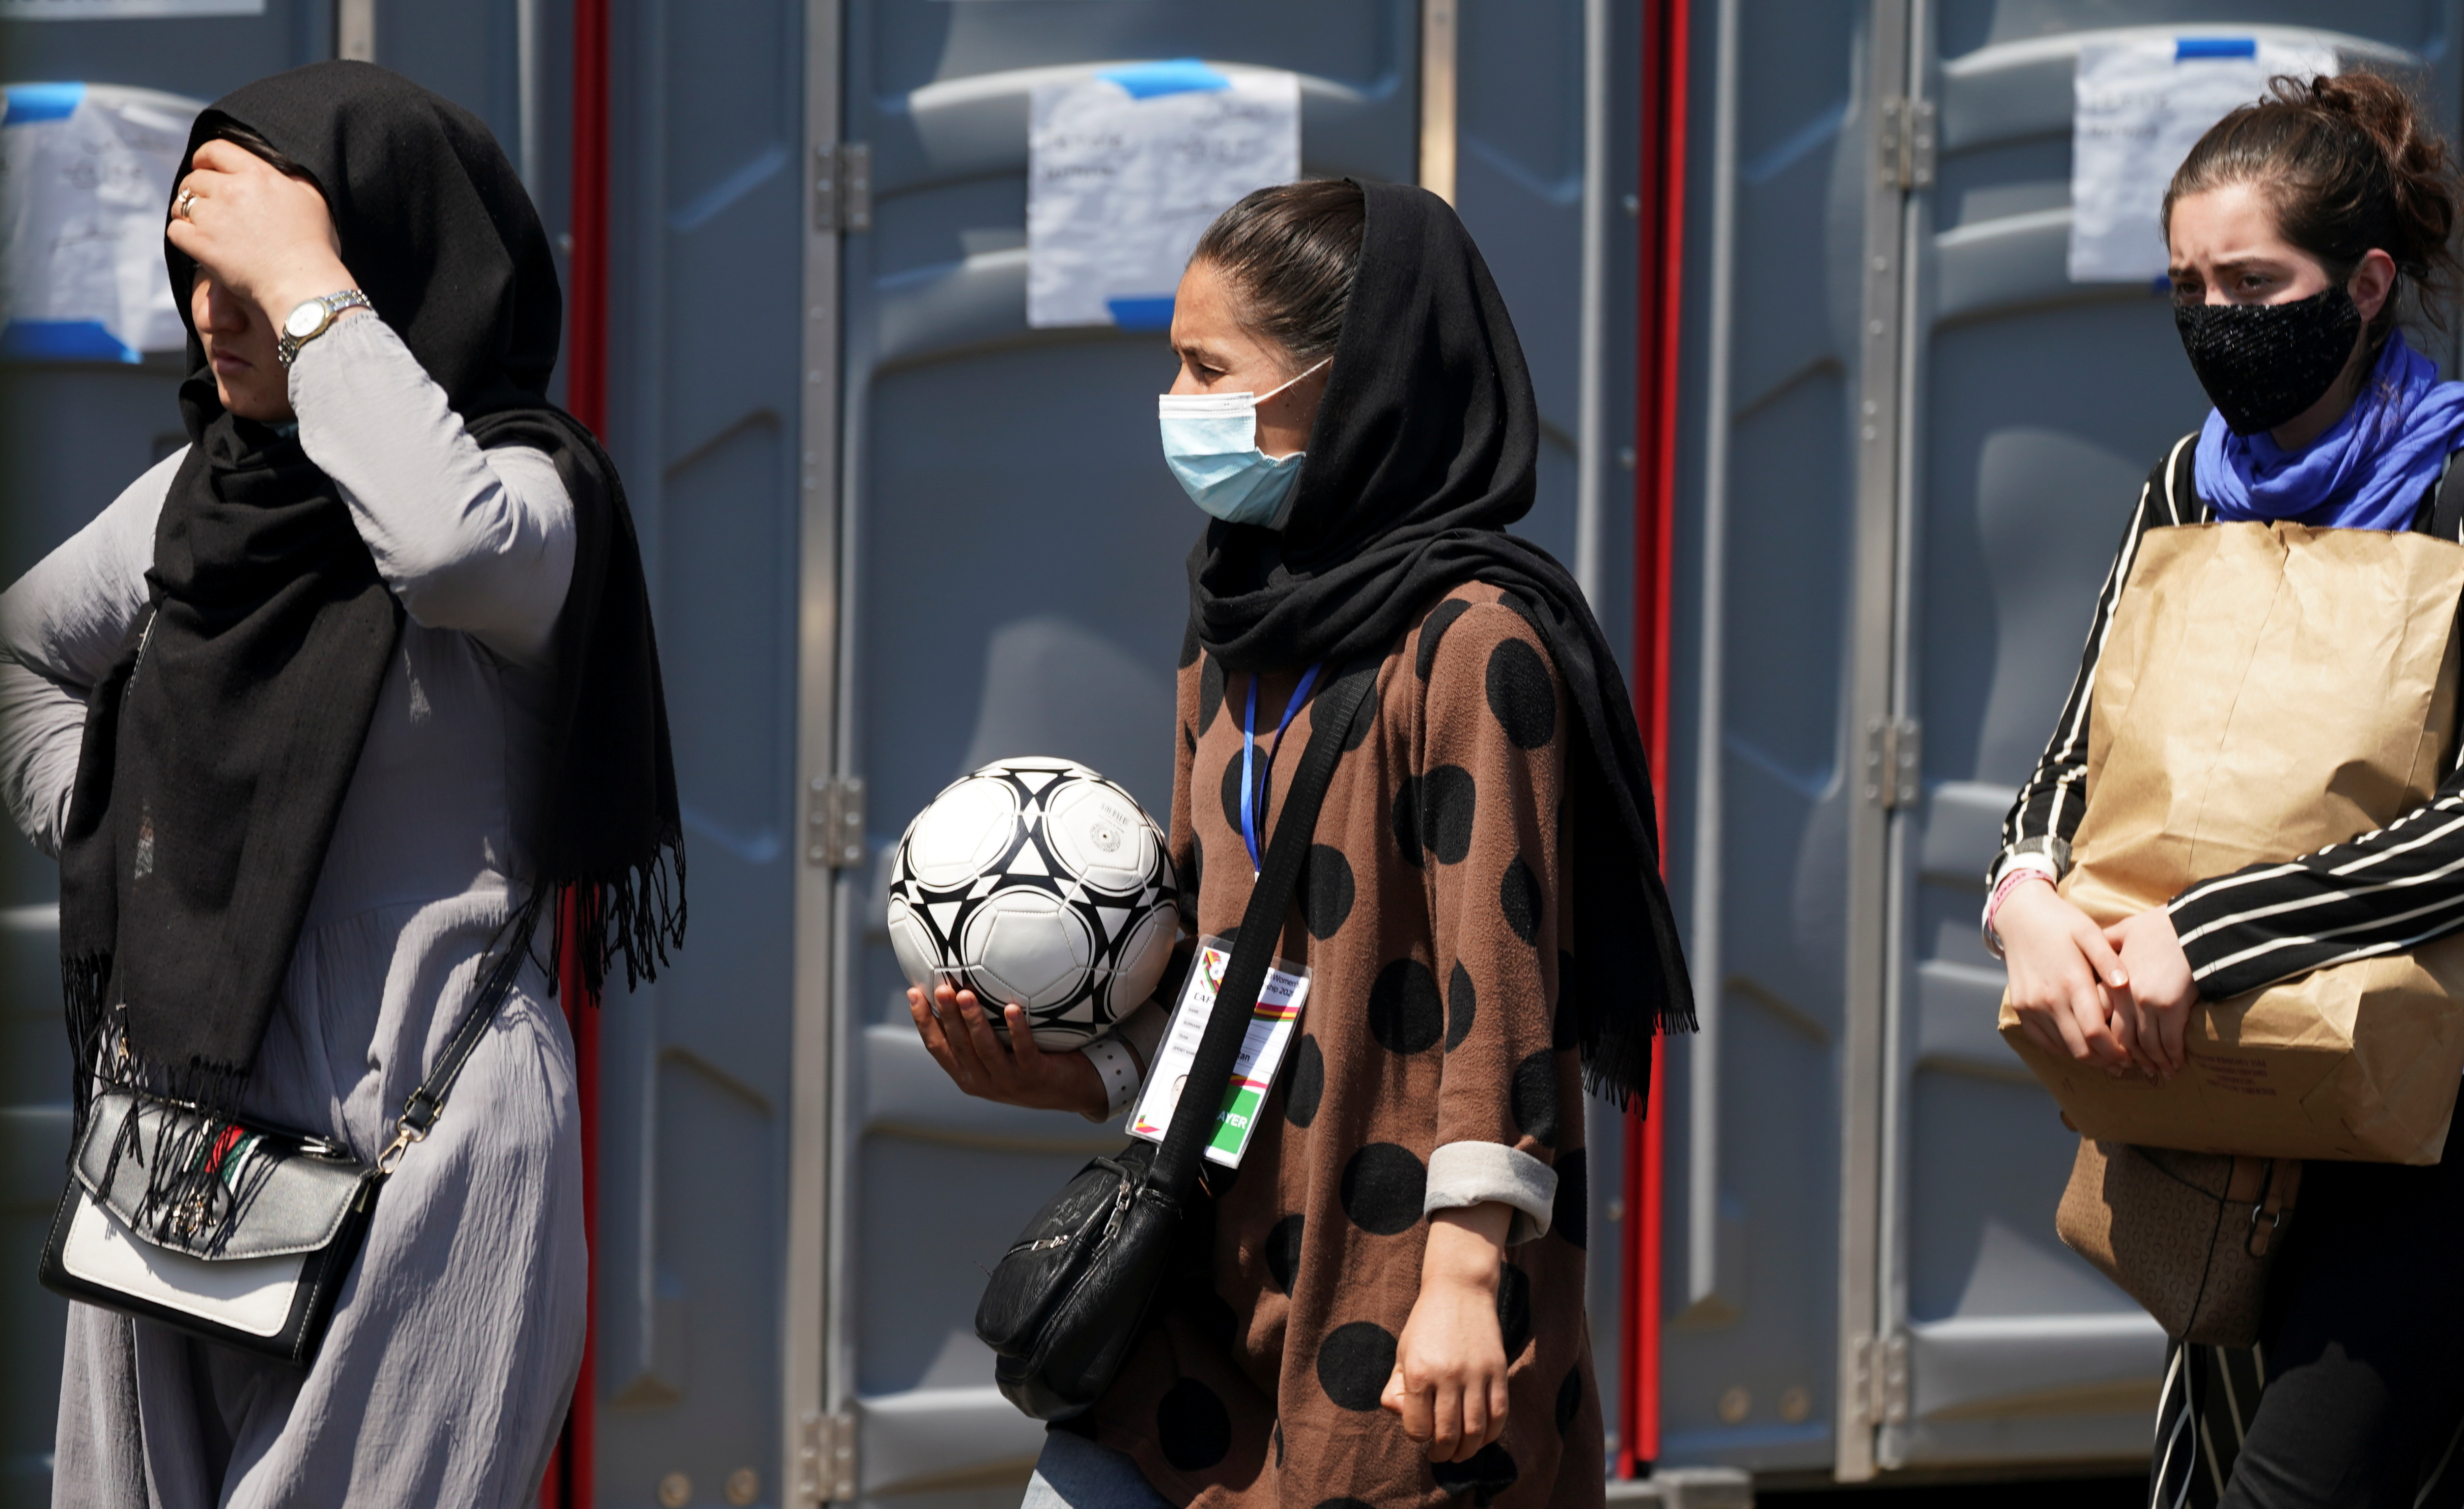 An Afghan woman holding a soccer ball and wearing a CAFA (Central Asian Football Association) credential, waits in line at a processing center for refugees evacuated from Afghanistan at the Dulles Expo Center near Dulles International Airport in Chantilly, Virginia, U.S., August 24, 2021. REUTERS/Kevin Lamarque/File Photo